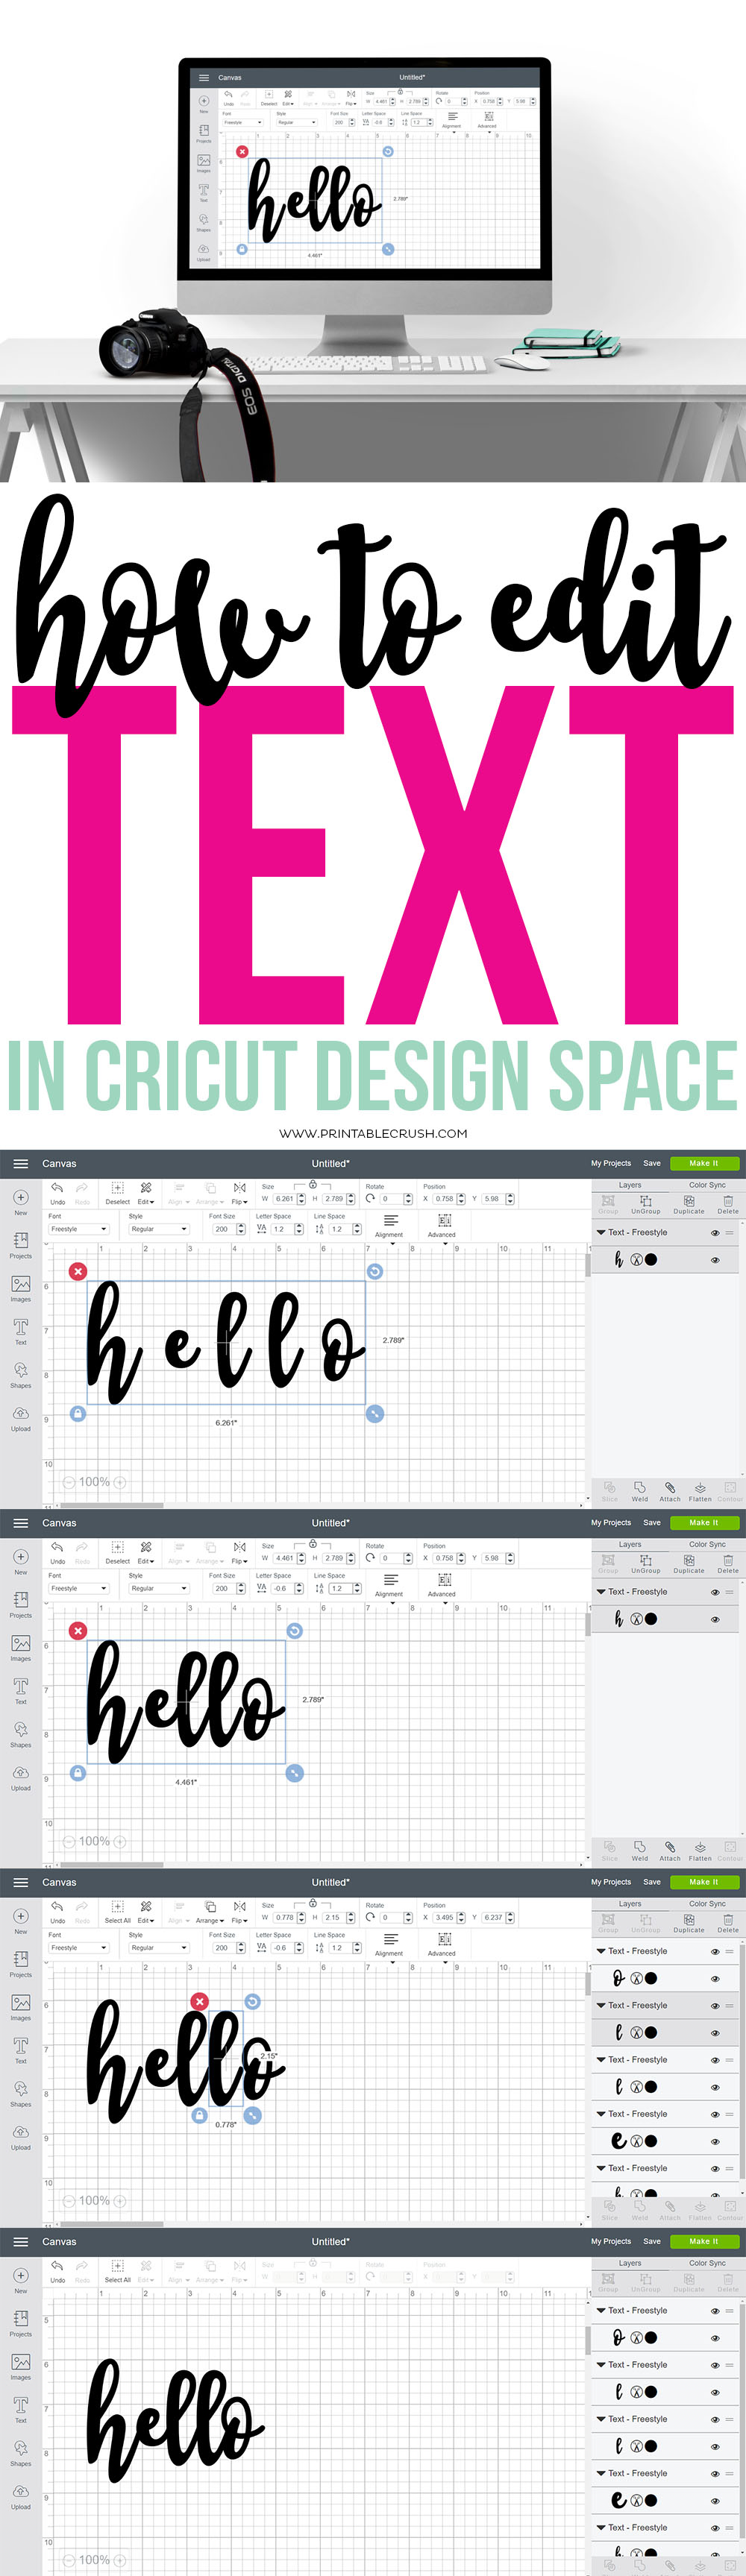 long collage on how to edit text in Cricut design space